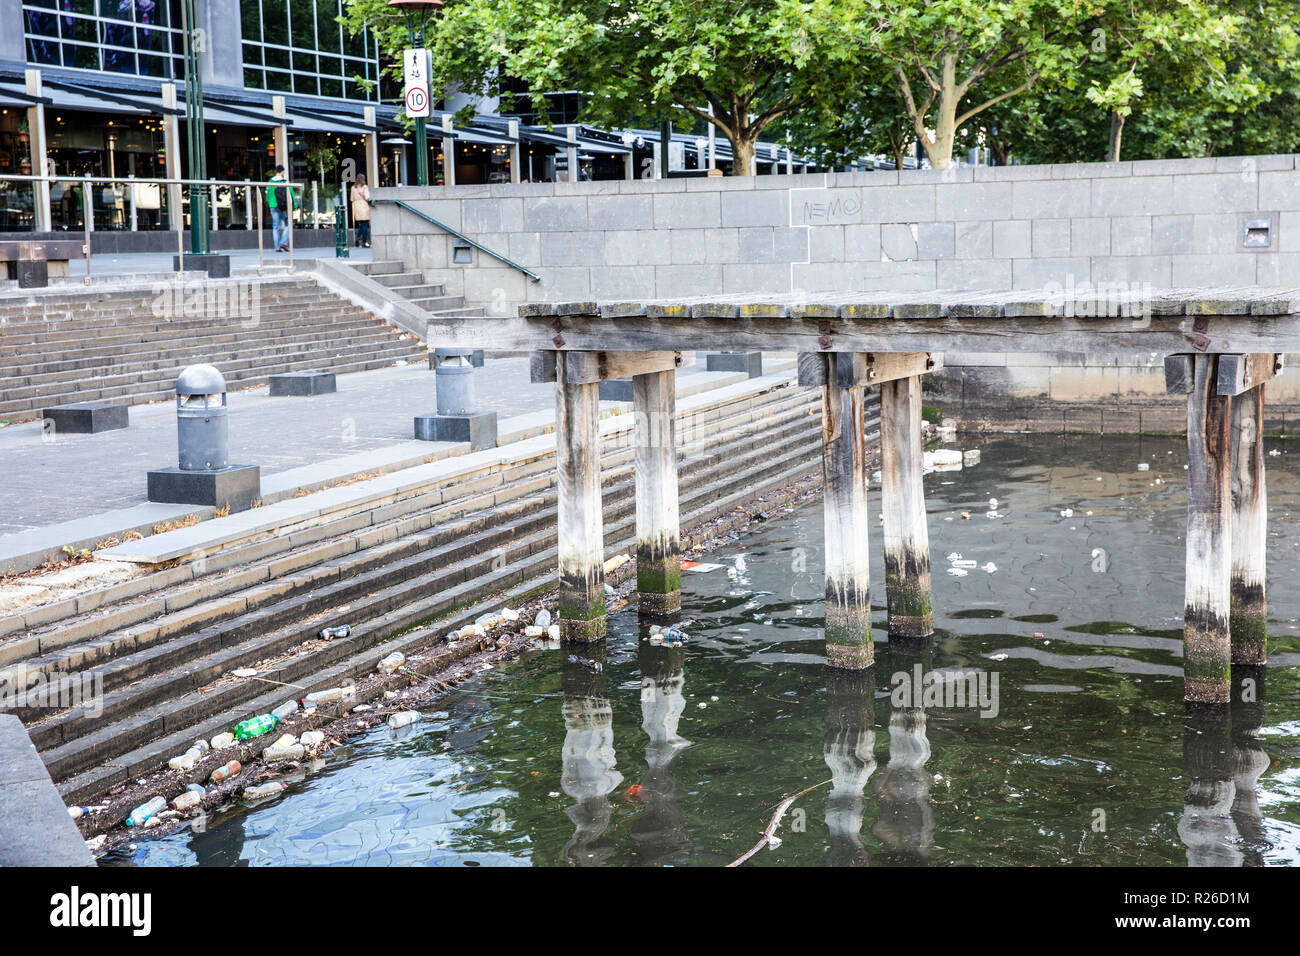 Plastic bottle pollution in the Yarra river in Melbourne,Victoria,Australia - Stock Image